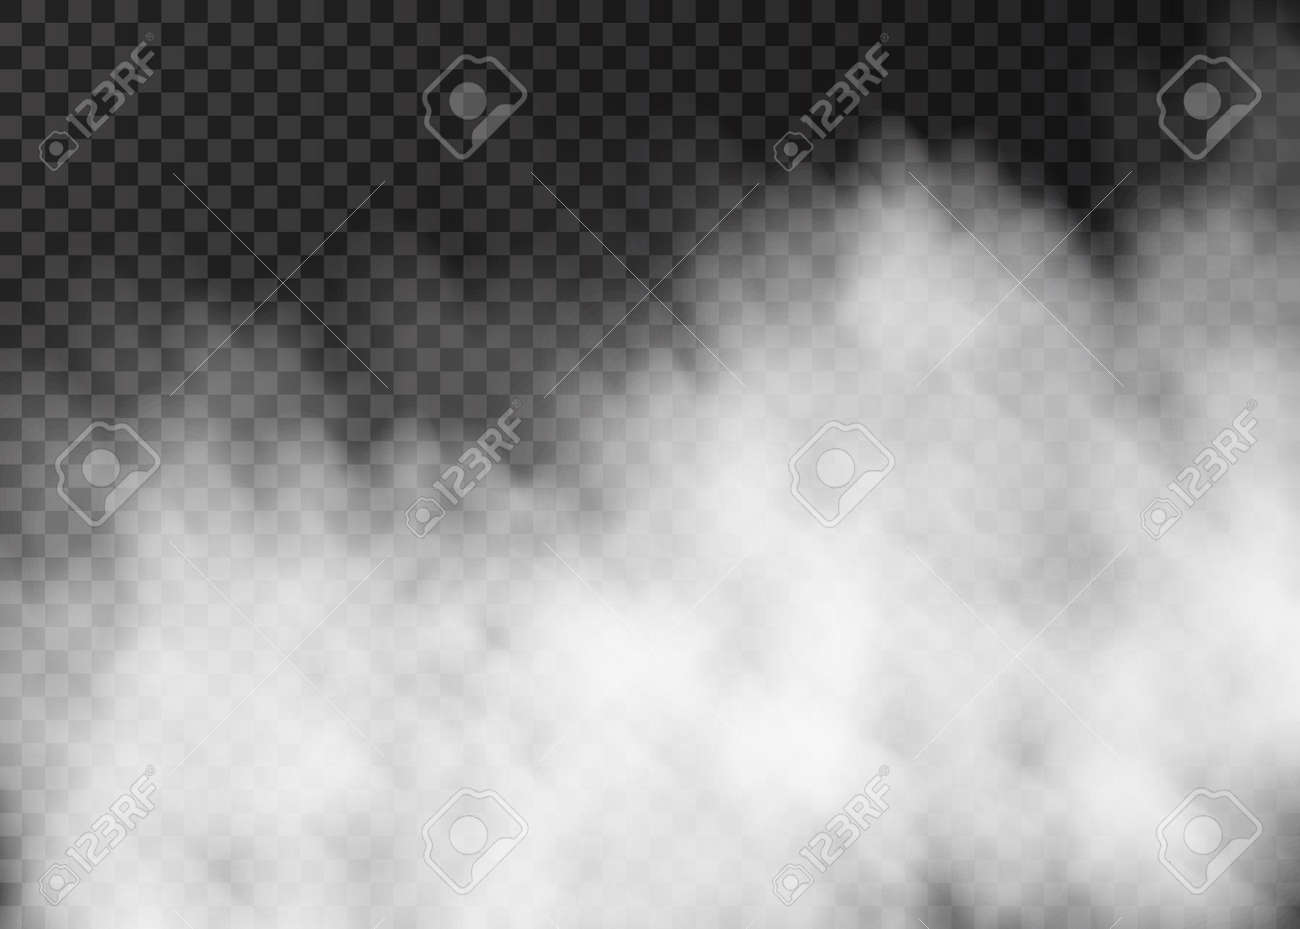 White smoke isolated on transparent background. Steam special effect. Realistic vector fire fog or mist texture. - 120490638